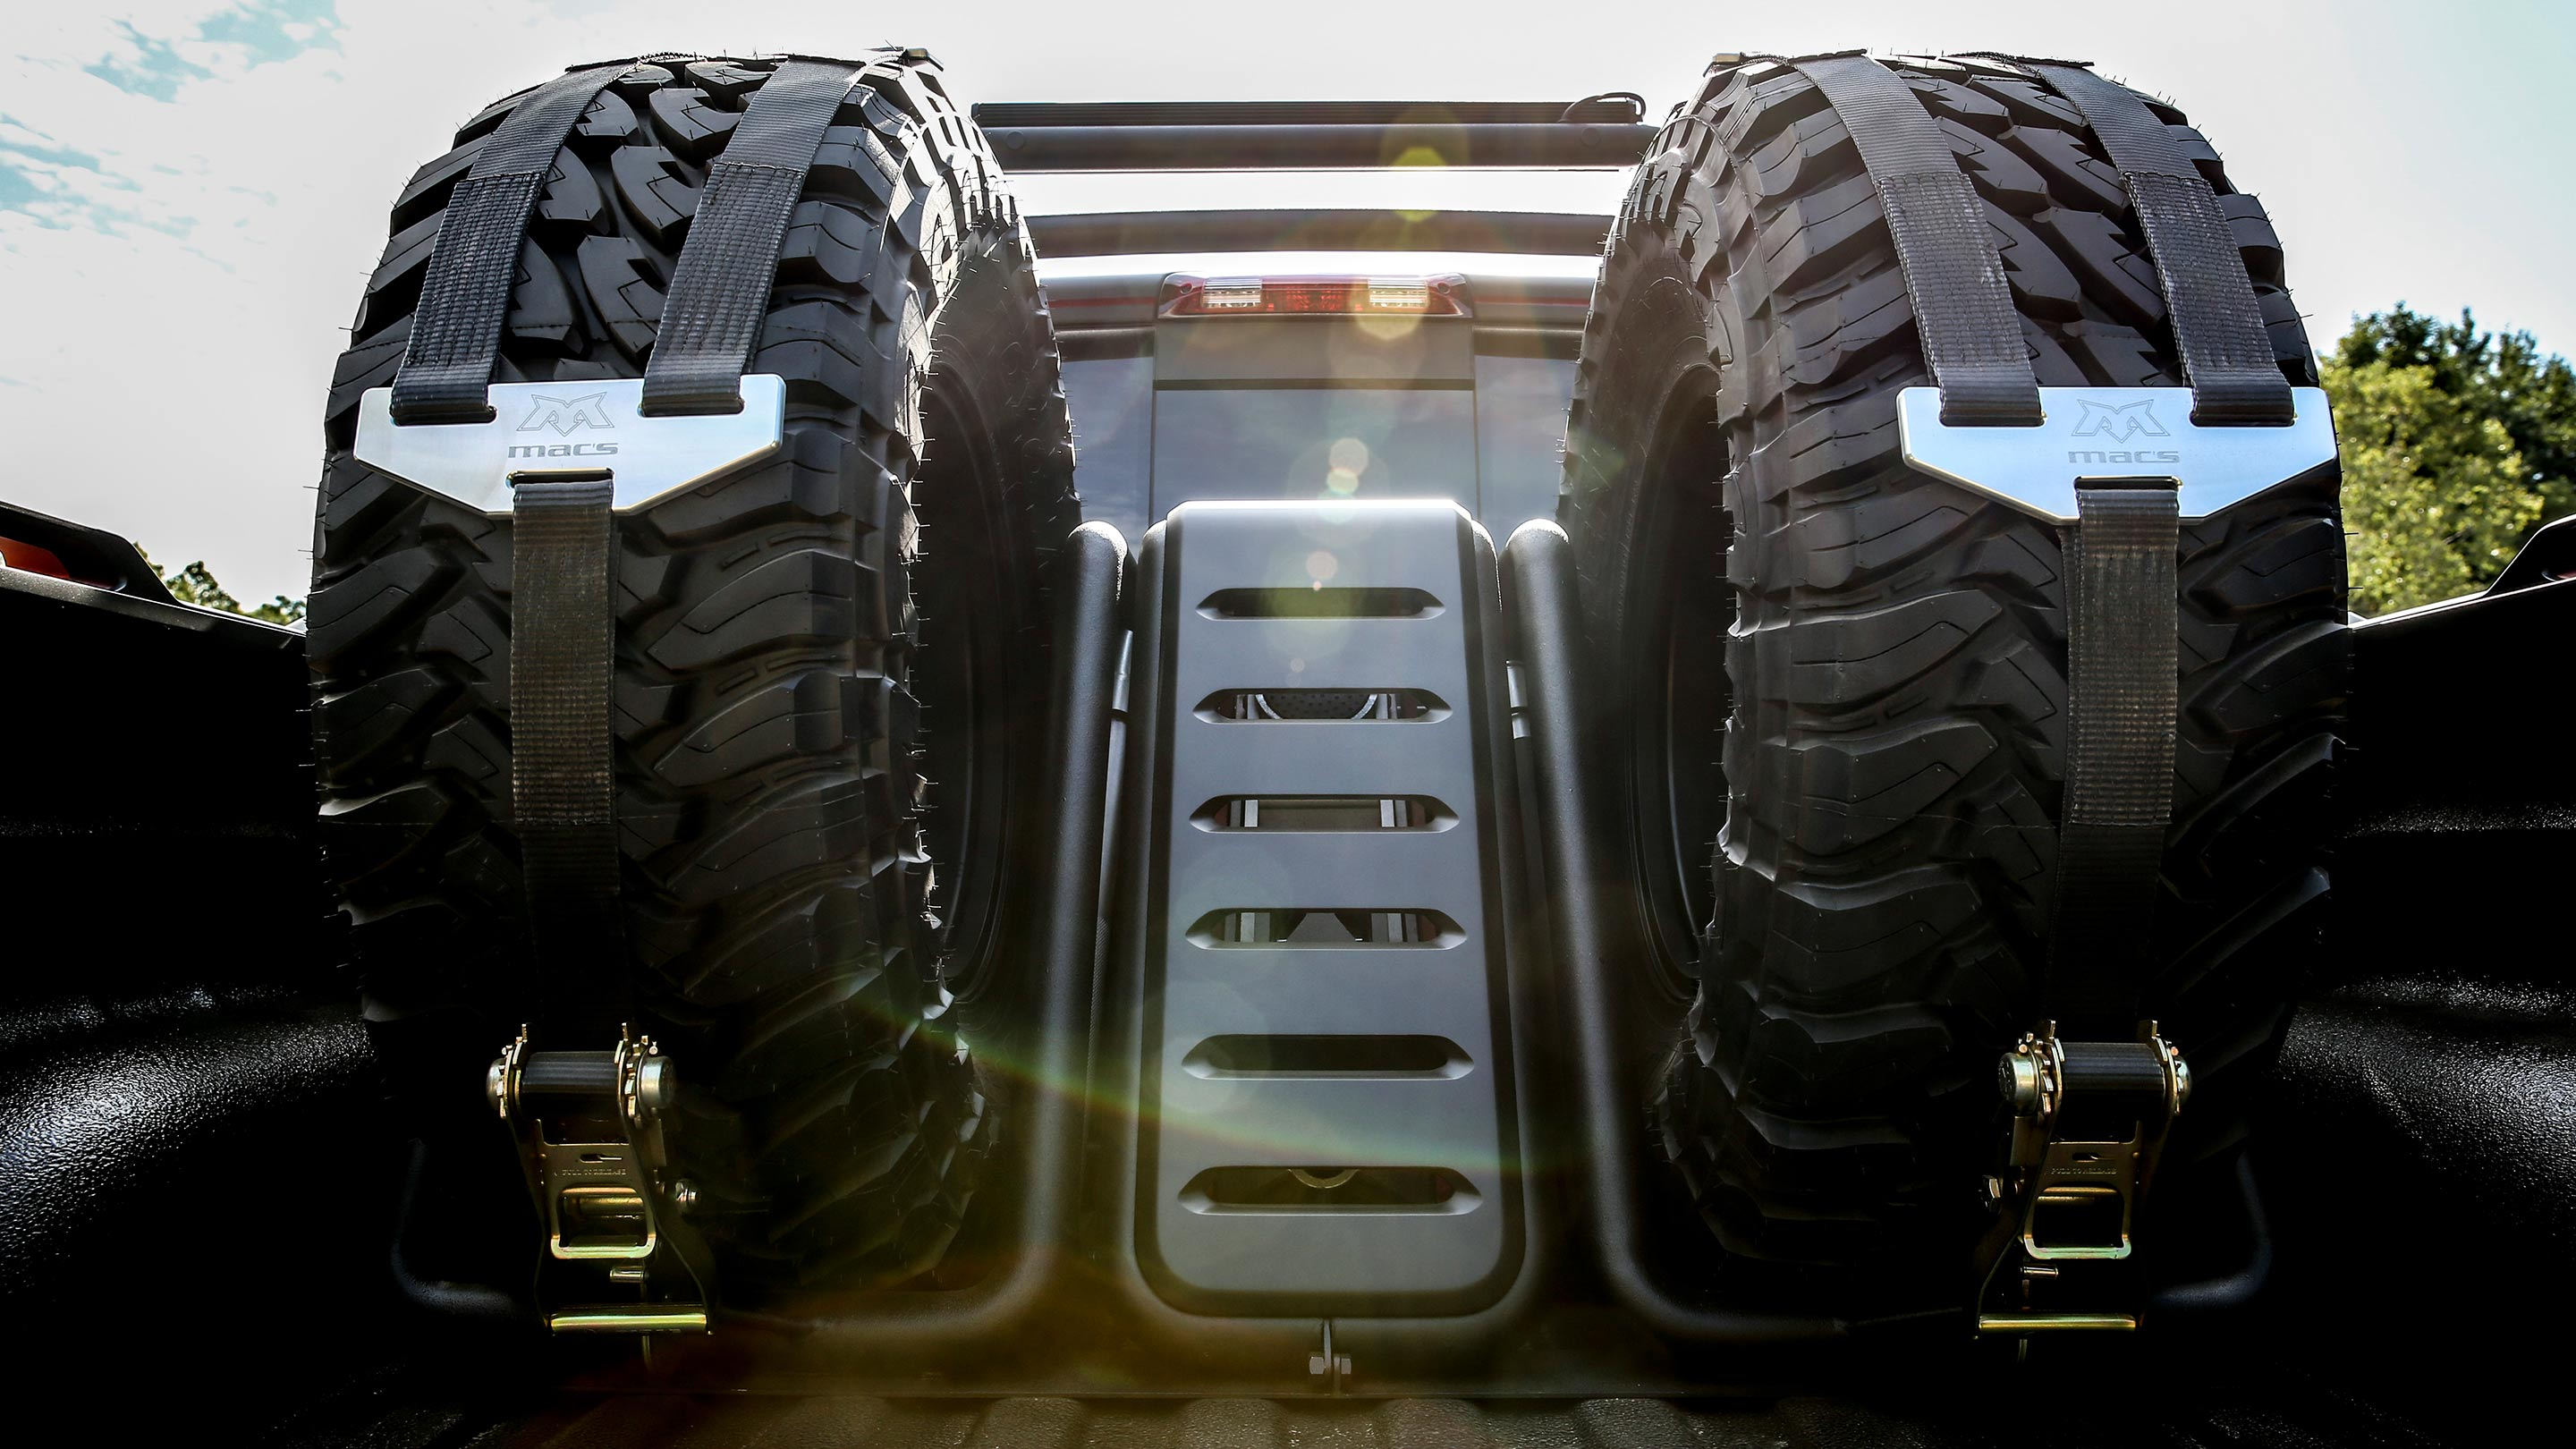 Badass looking tire rack in the bed of the truck Photo: ramtrucks